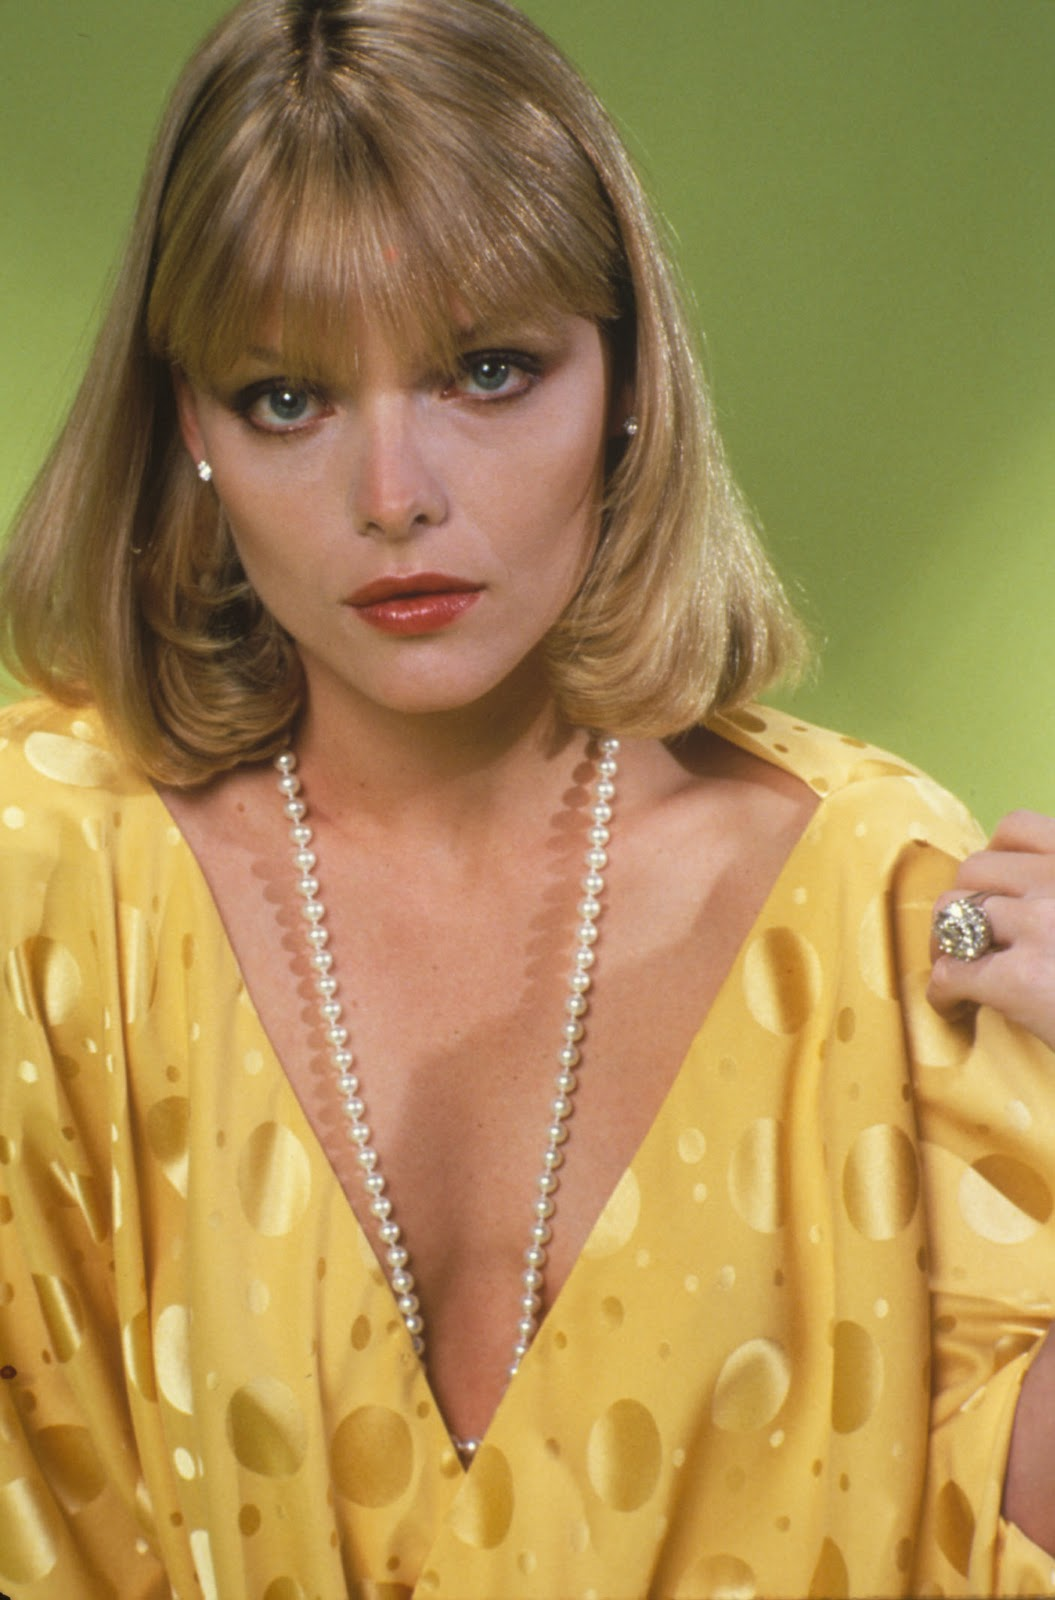 Michelle Pfeiffer 30 >> Young Celebrity Photo Gallery: Michelle Pfeiffer as Young Woman